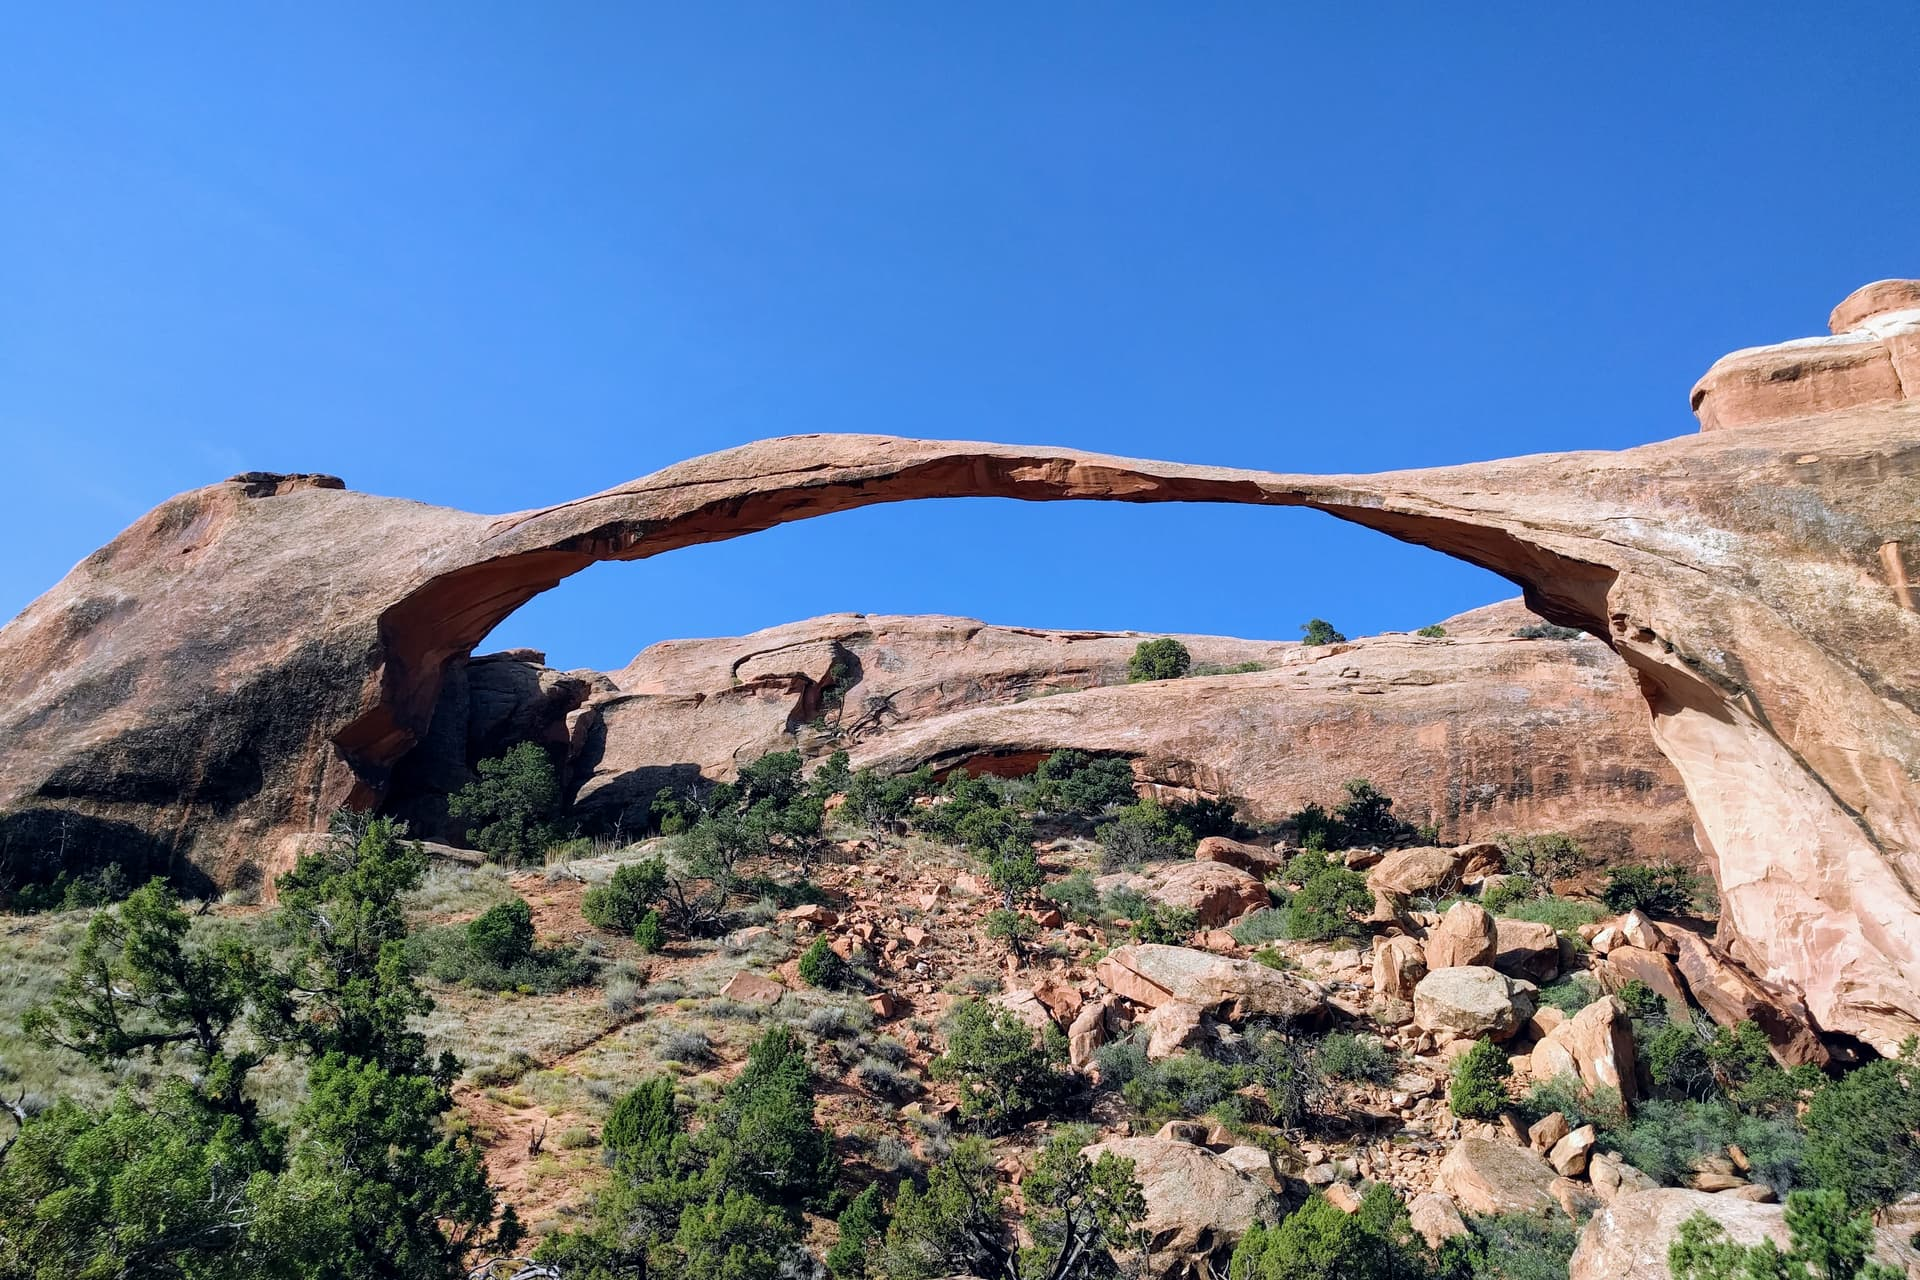 An incredibly thin red sandstone arch.